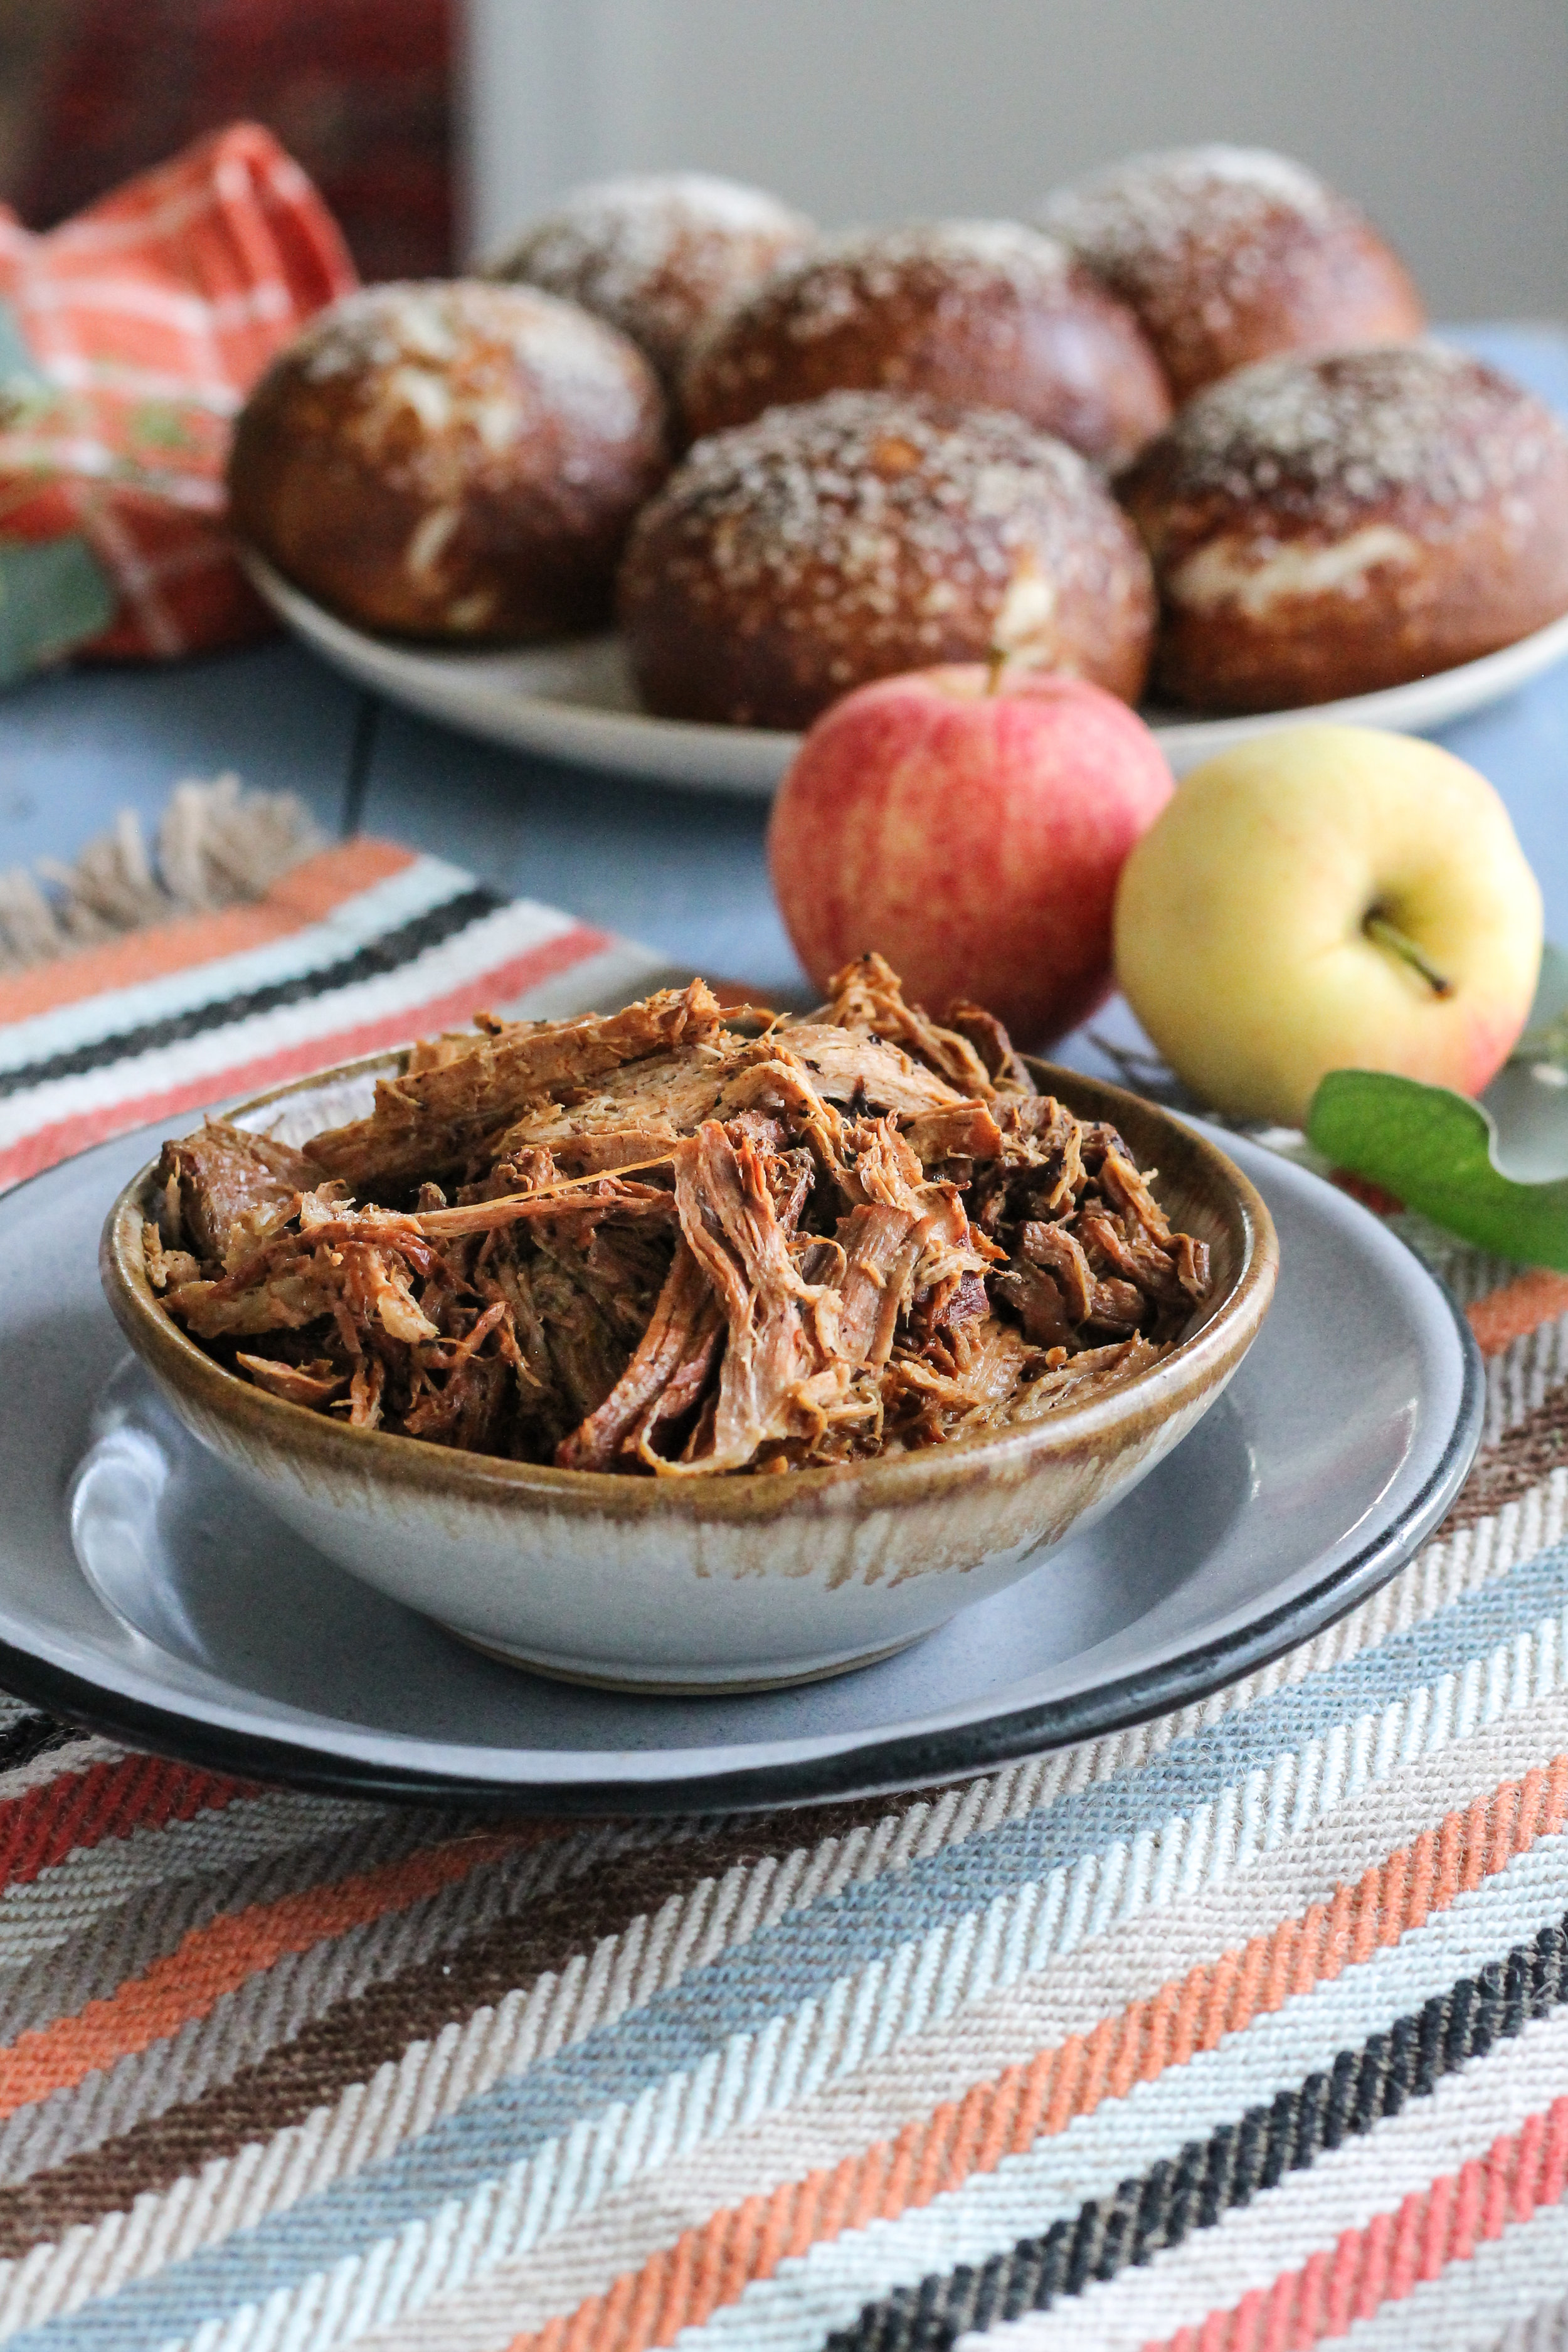 SLOW-COOKER ROOT BEER & BALSAMIC PULLED PORK WITH APPLE KALE SLAW SANDWICHES MAKE THE PERFECT TAILGATE TREAT! [ WWW.PEDANTICFOODIE.COM ]